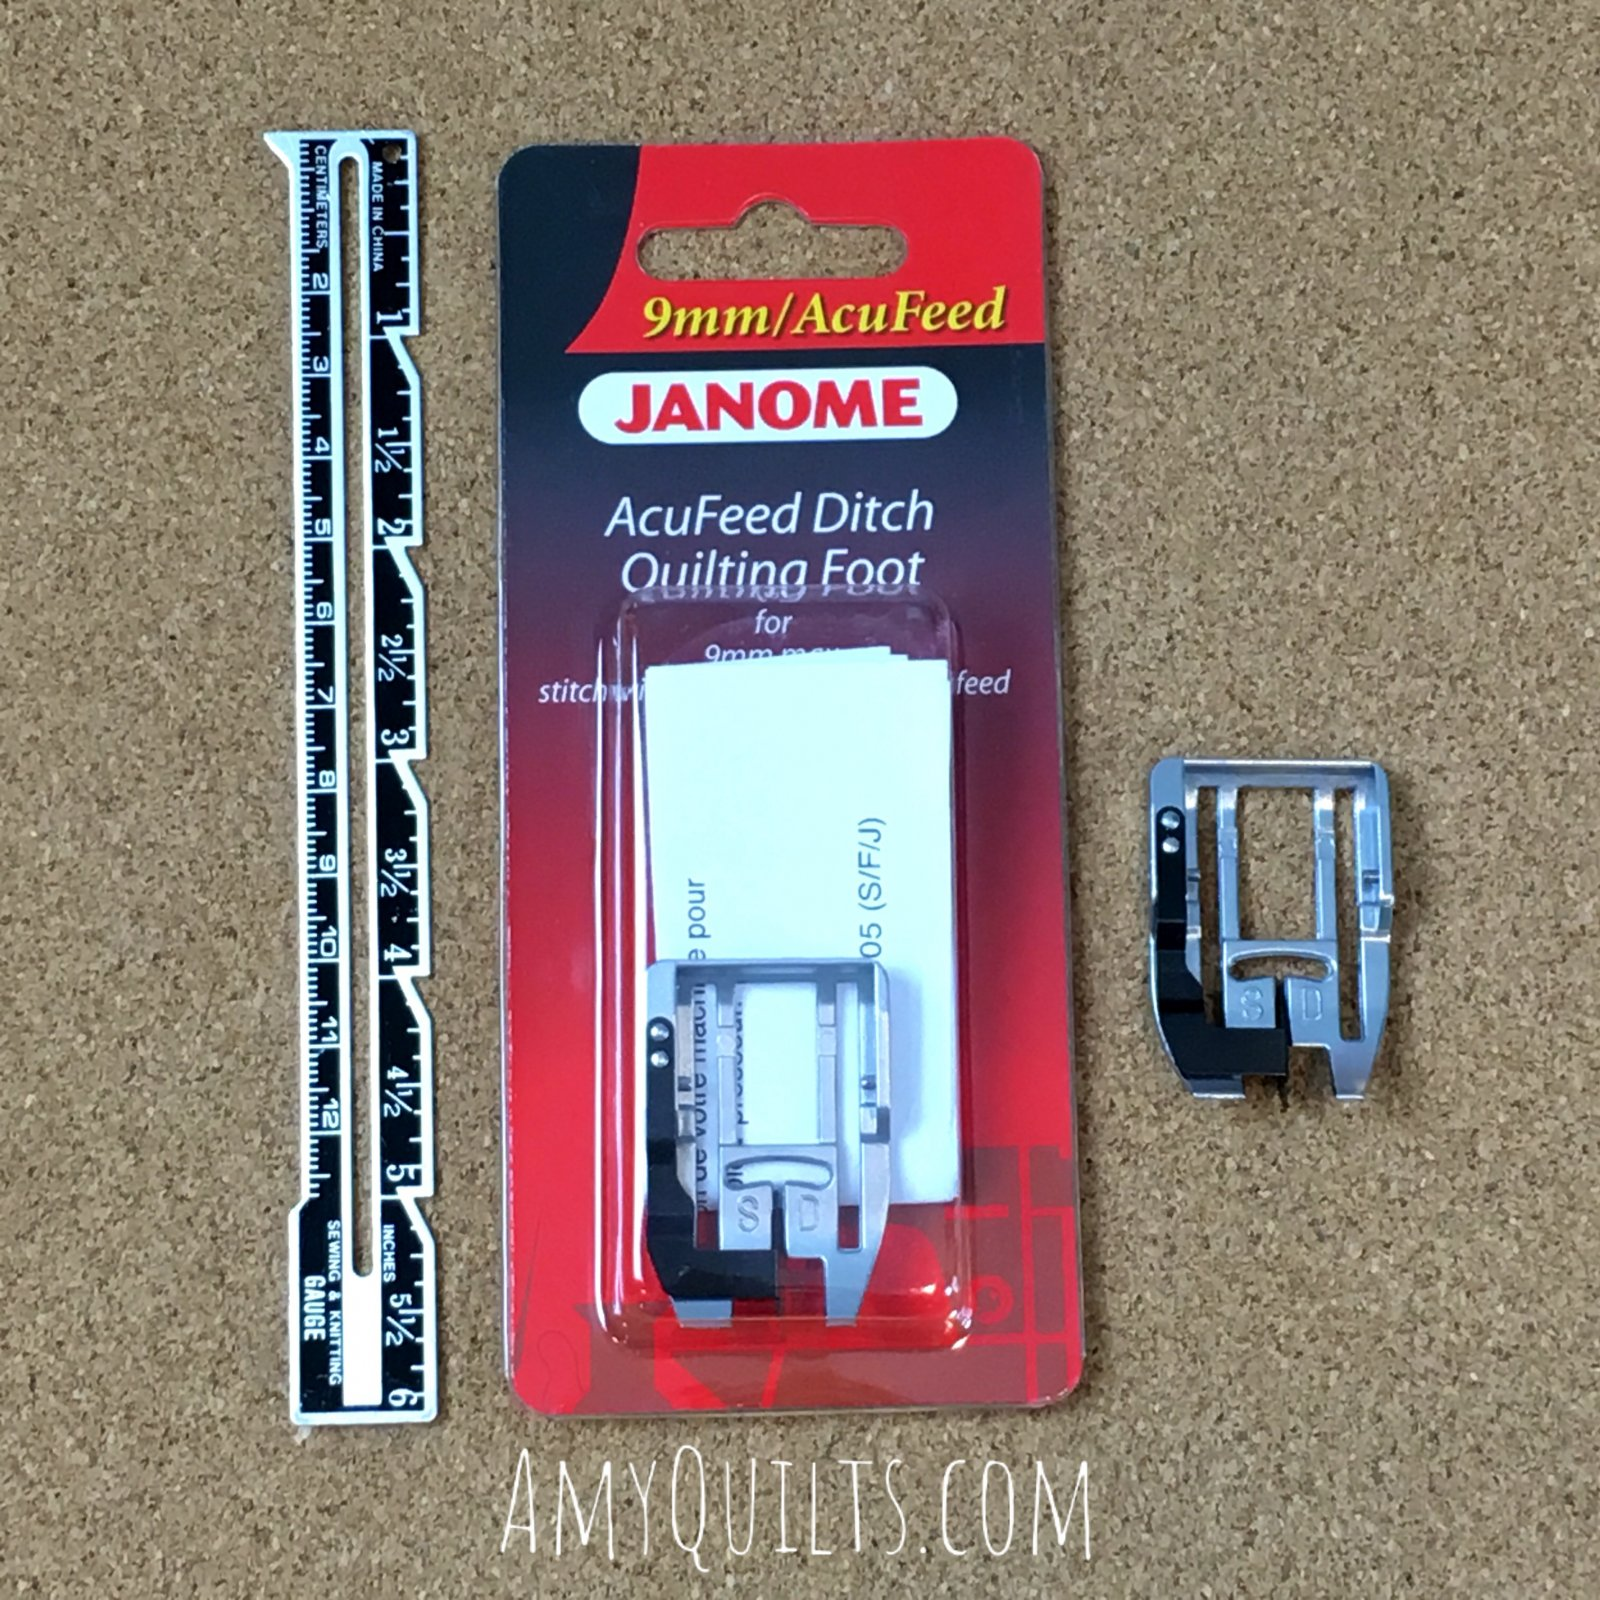 Janome AcuFeed Ditch Quilting Foot (SD)